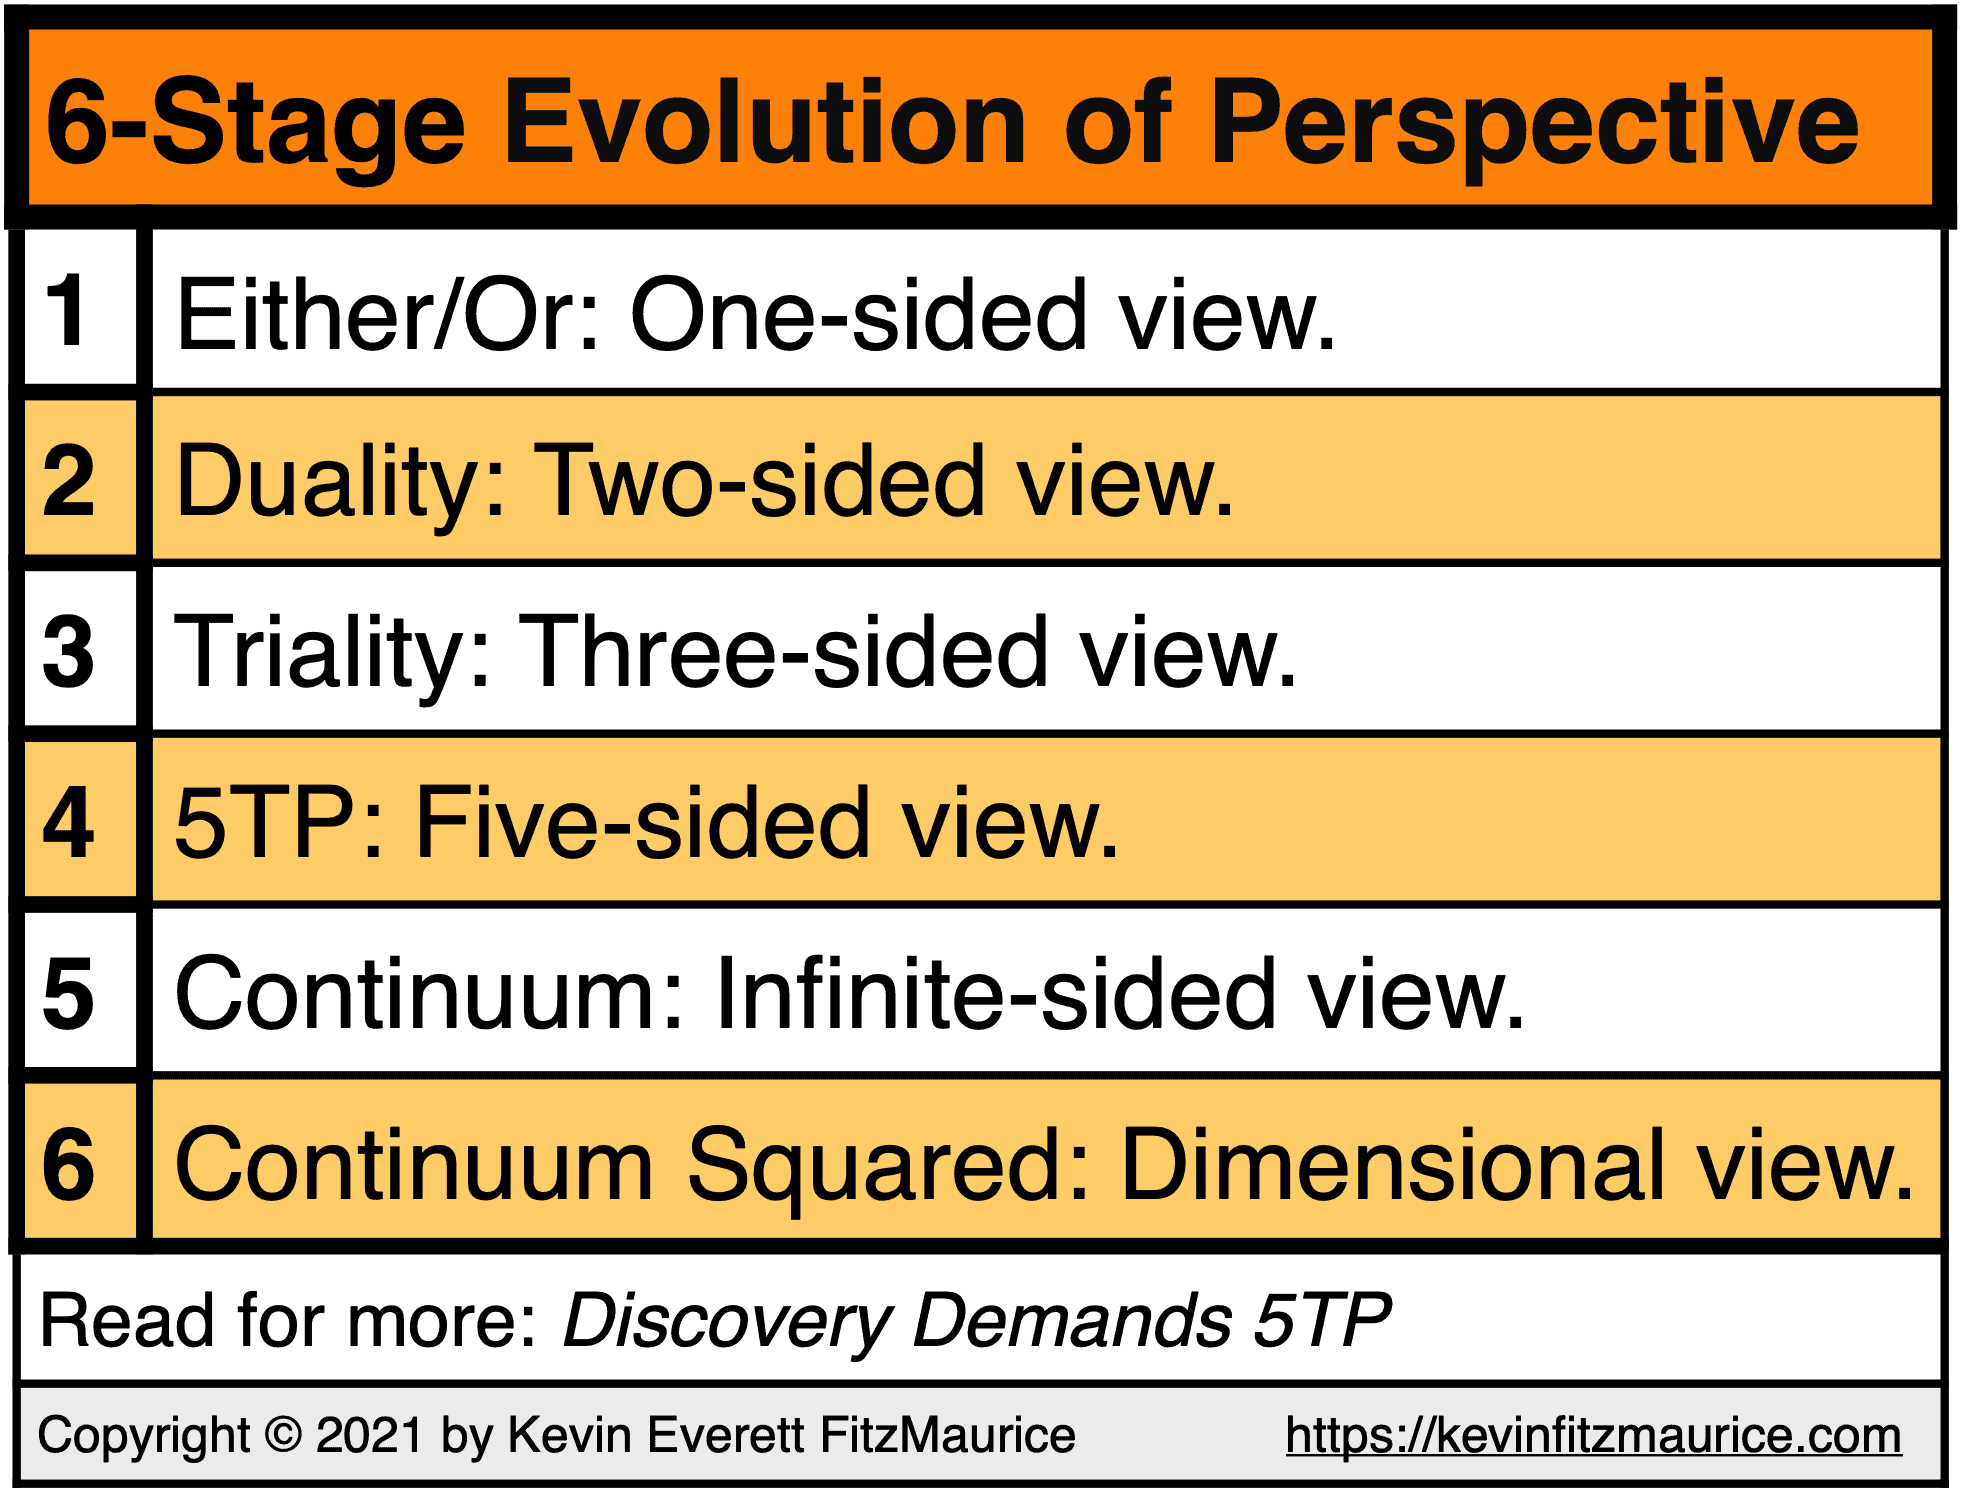 6 Stages of the Evolution of Taking Perspective